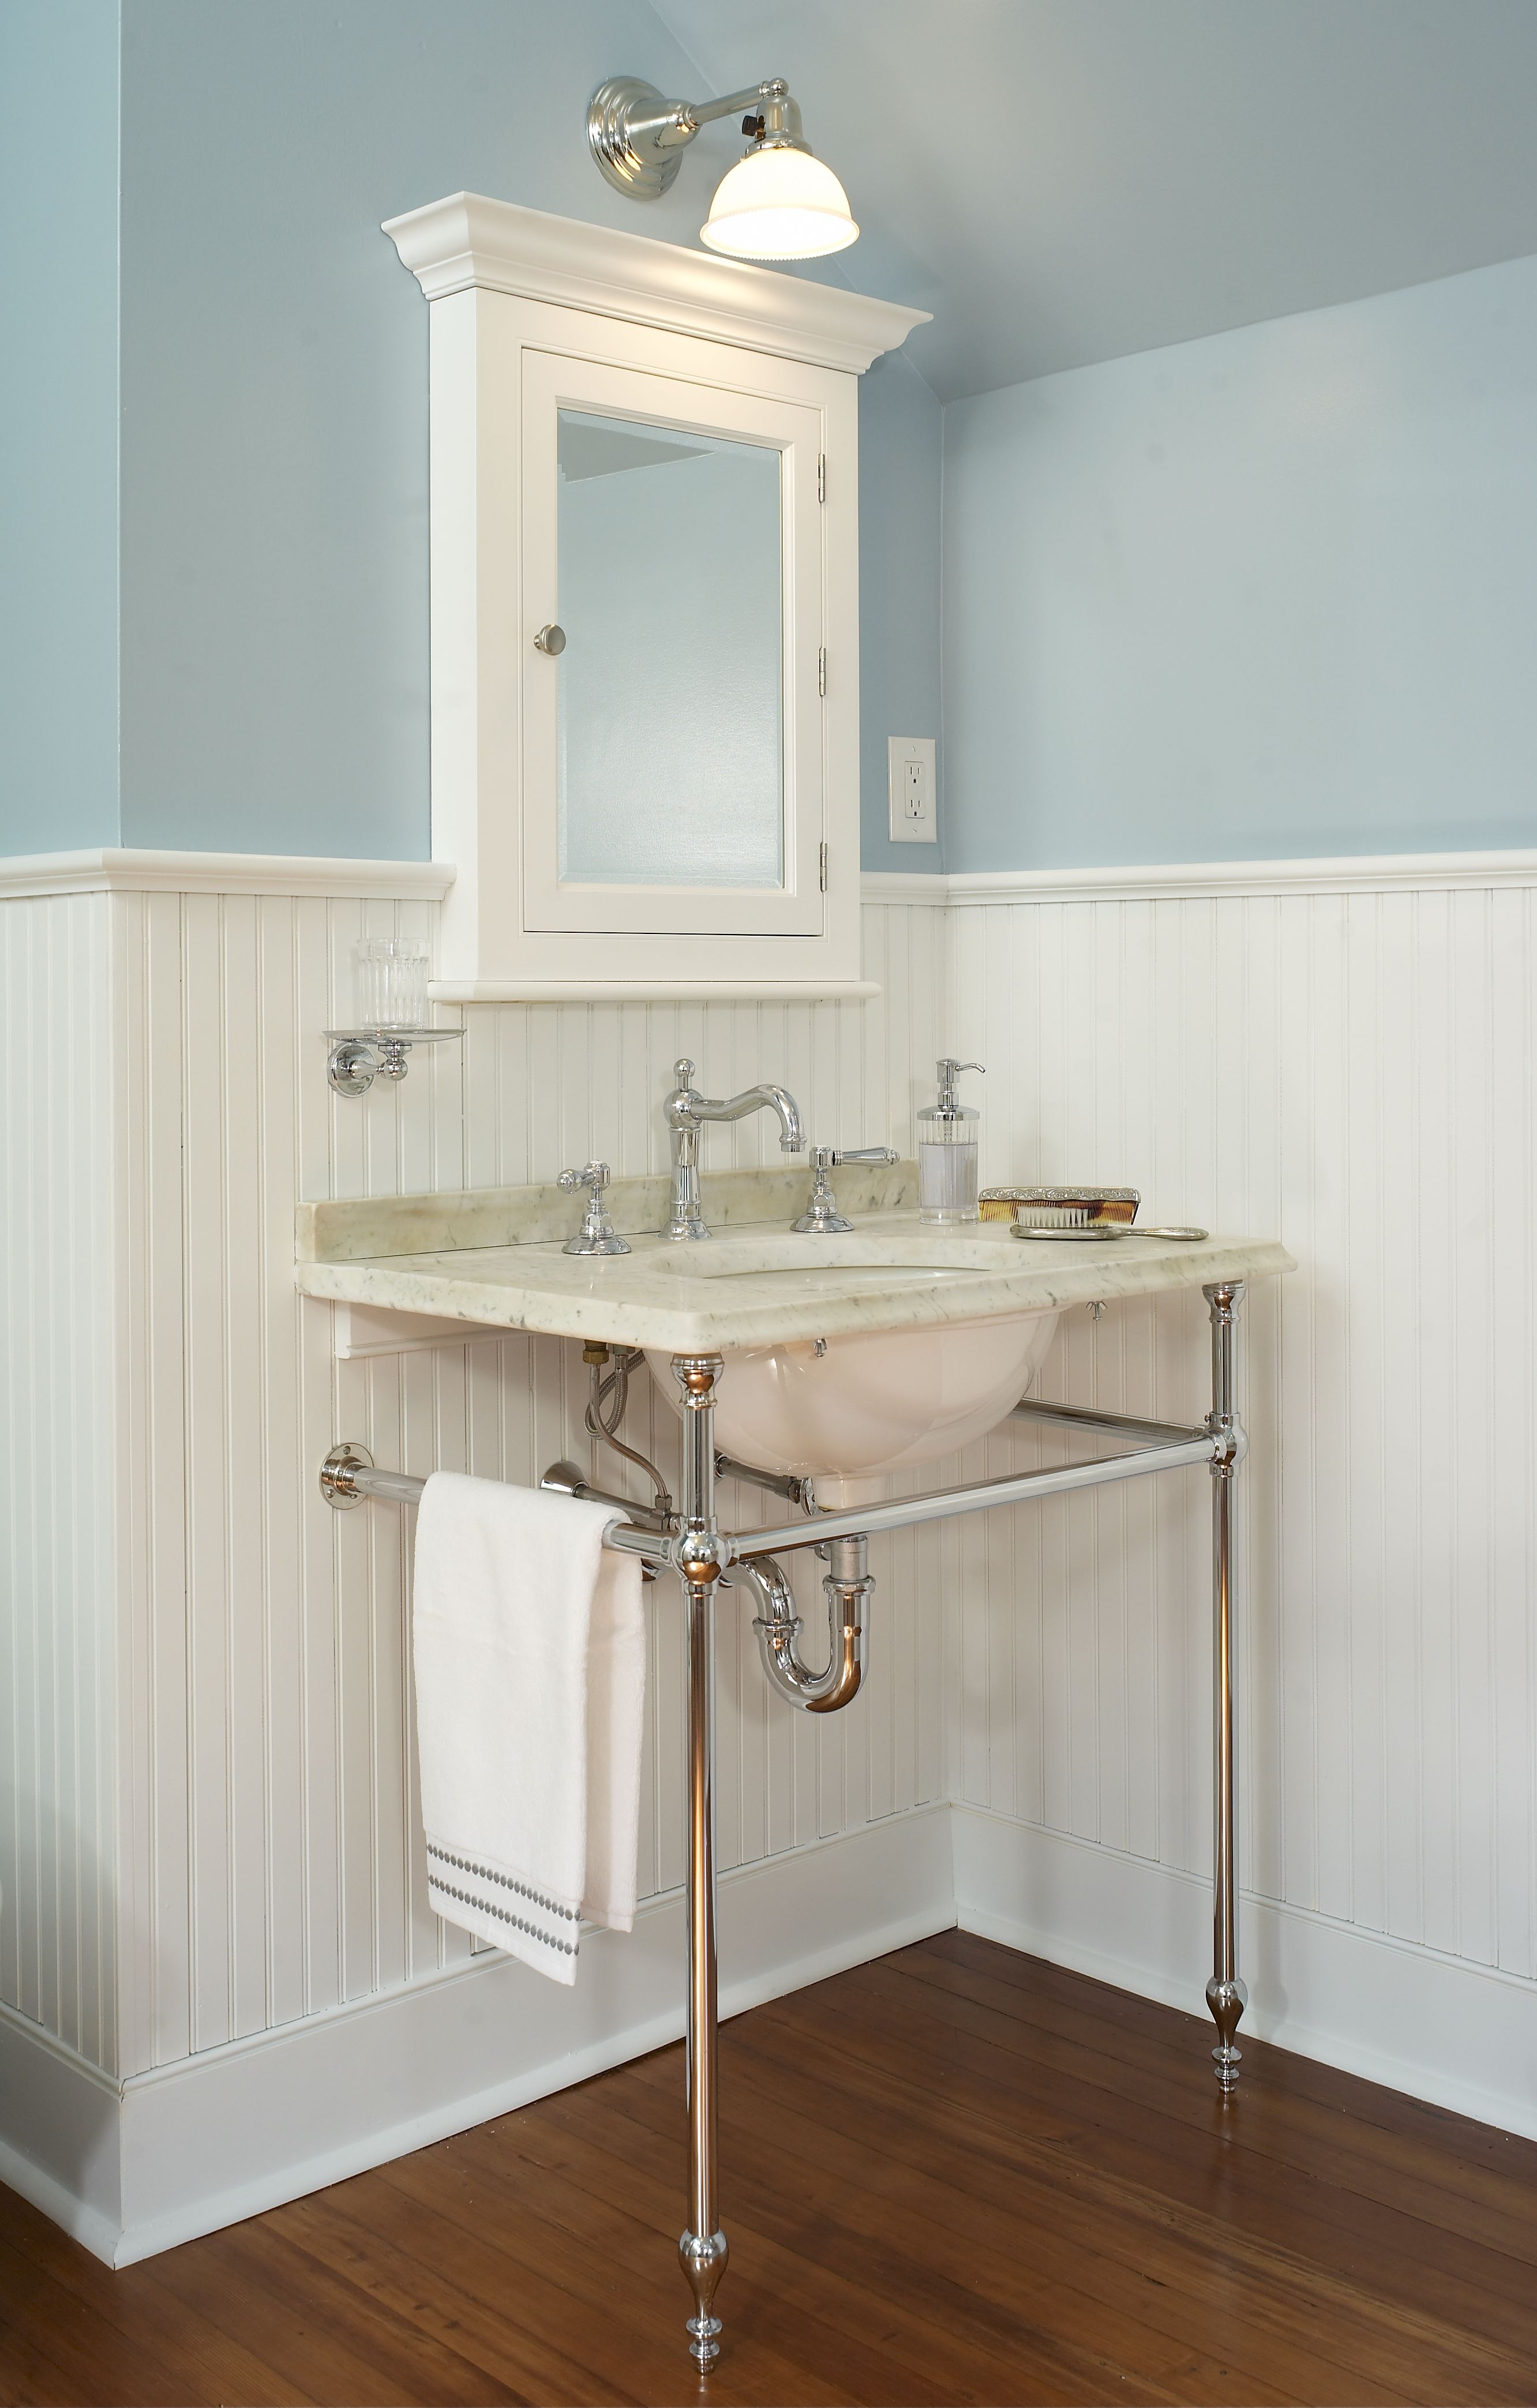 Original Vintage Bathrooms Designs Remodeling Ideas In - Bathroom remodeling bucks county